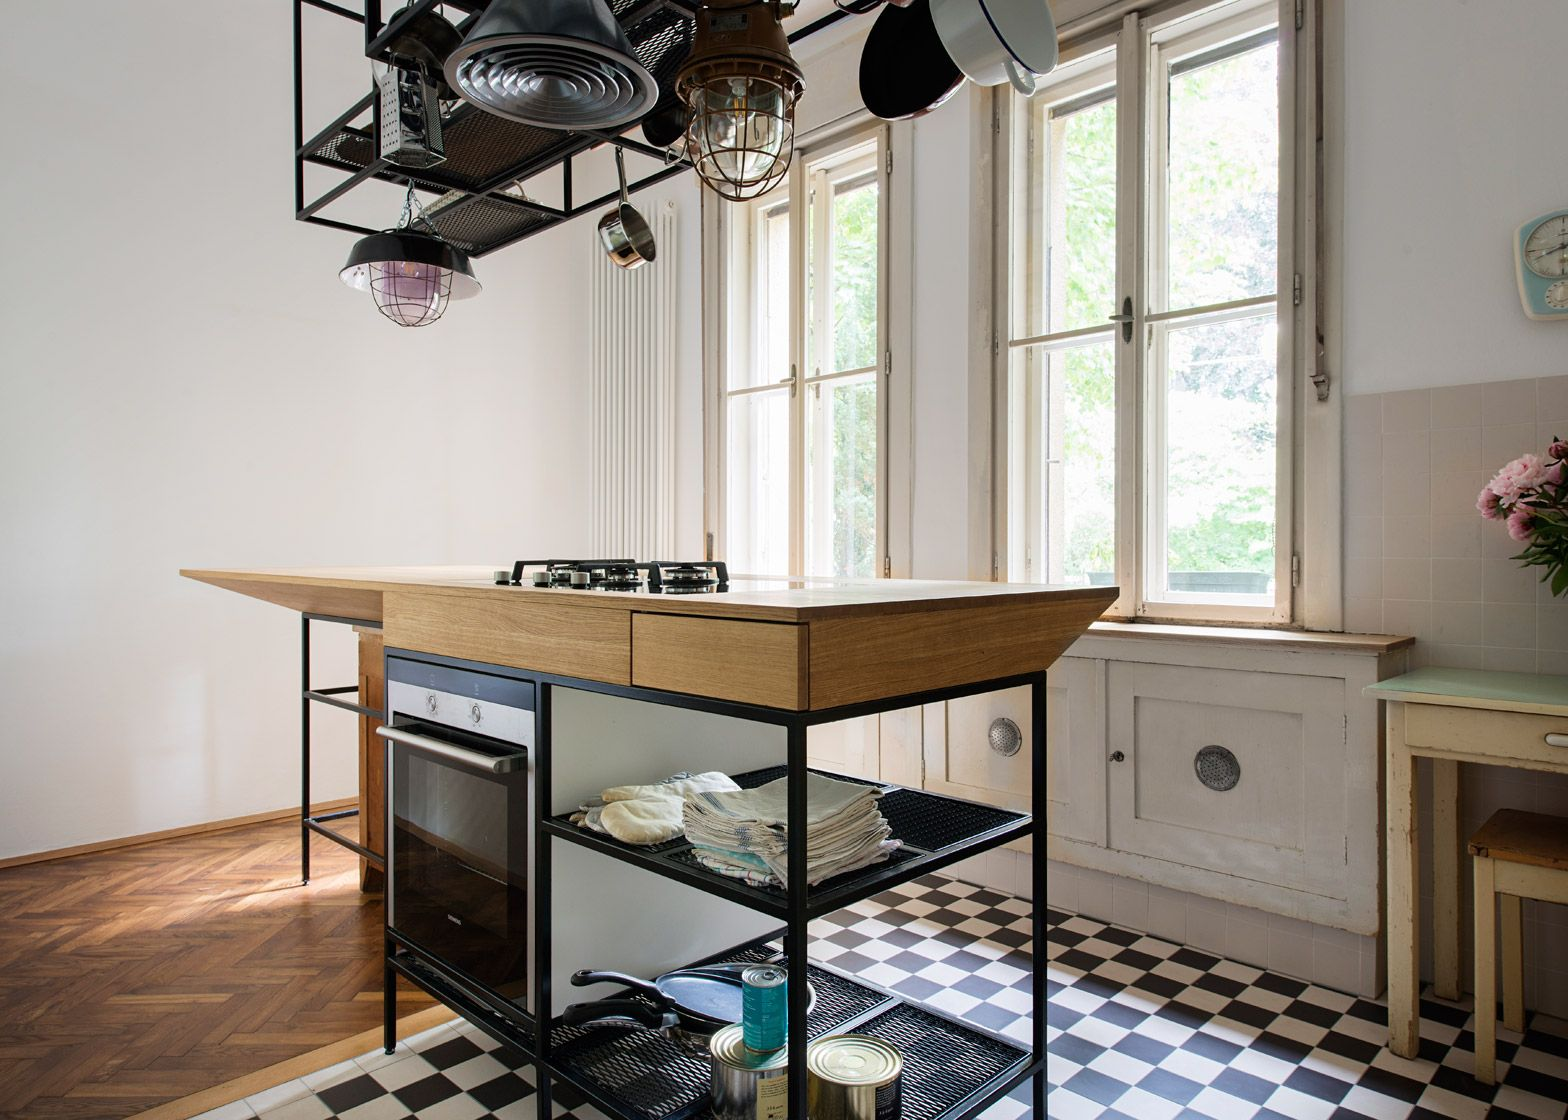 Munich Architecture Studio Ifub Has Overhauled A 1930s Apartment In Vienna Uncovering Original Details Like Parquet Flooring